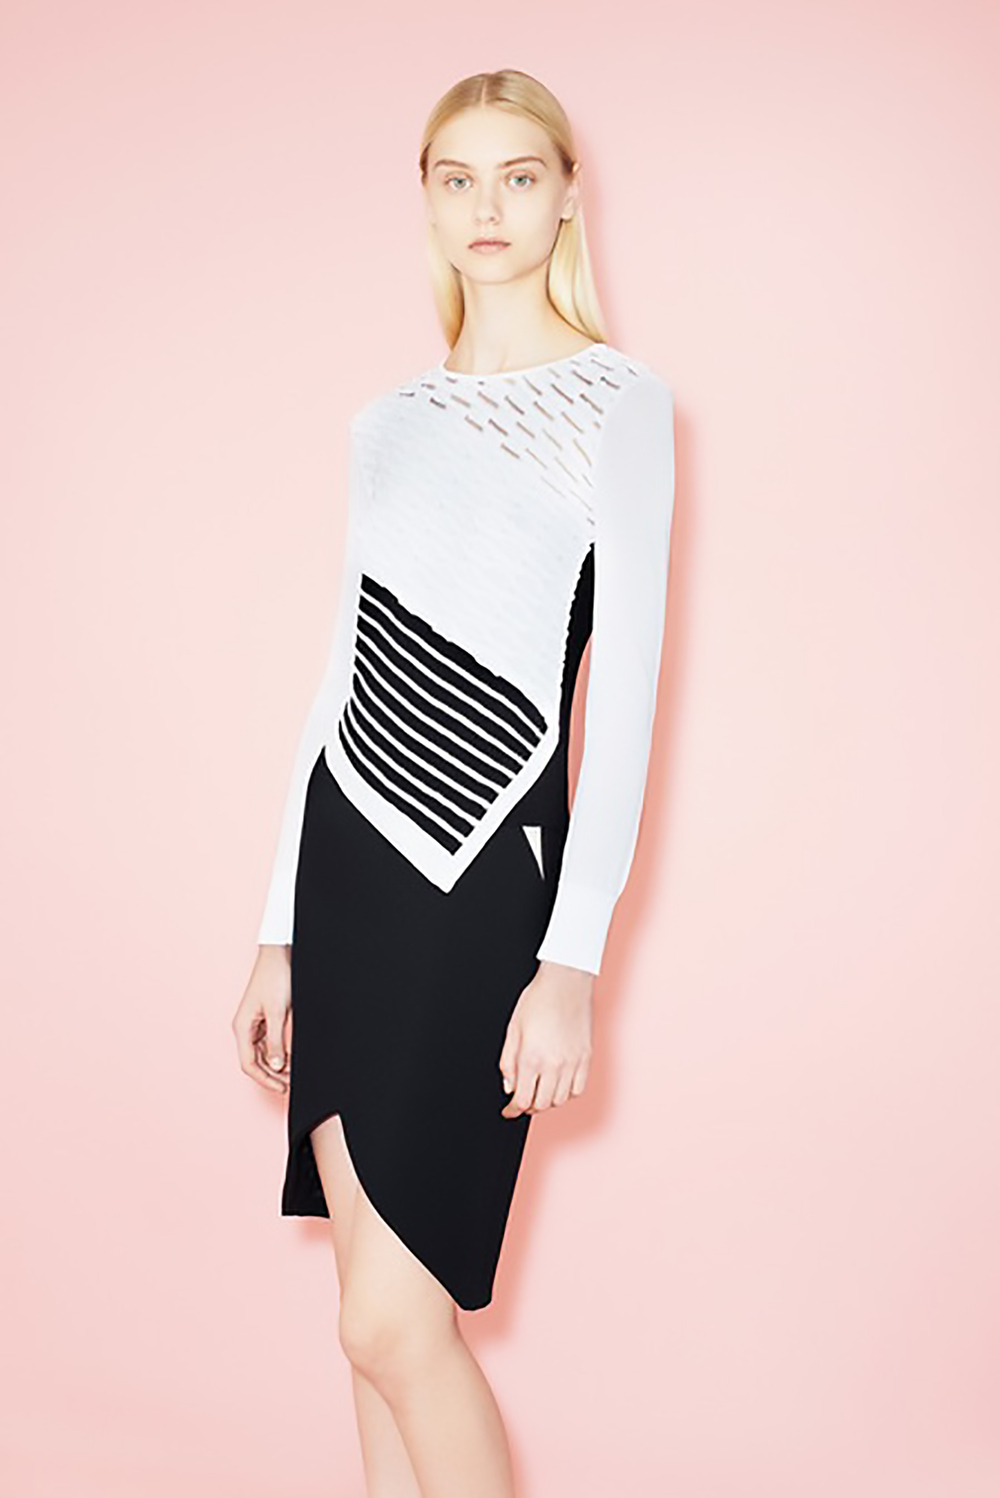 style.com peter pilotto resort 2014 look 9 peter pilotto 1500.jpg